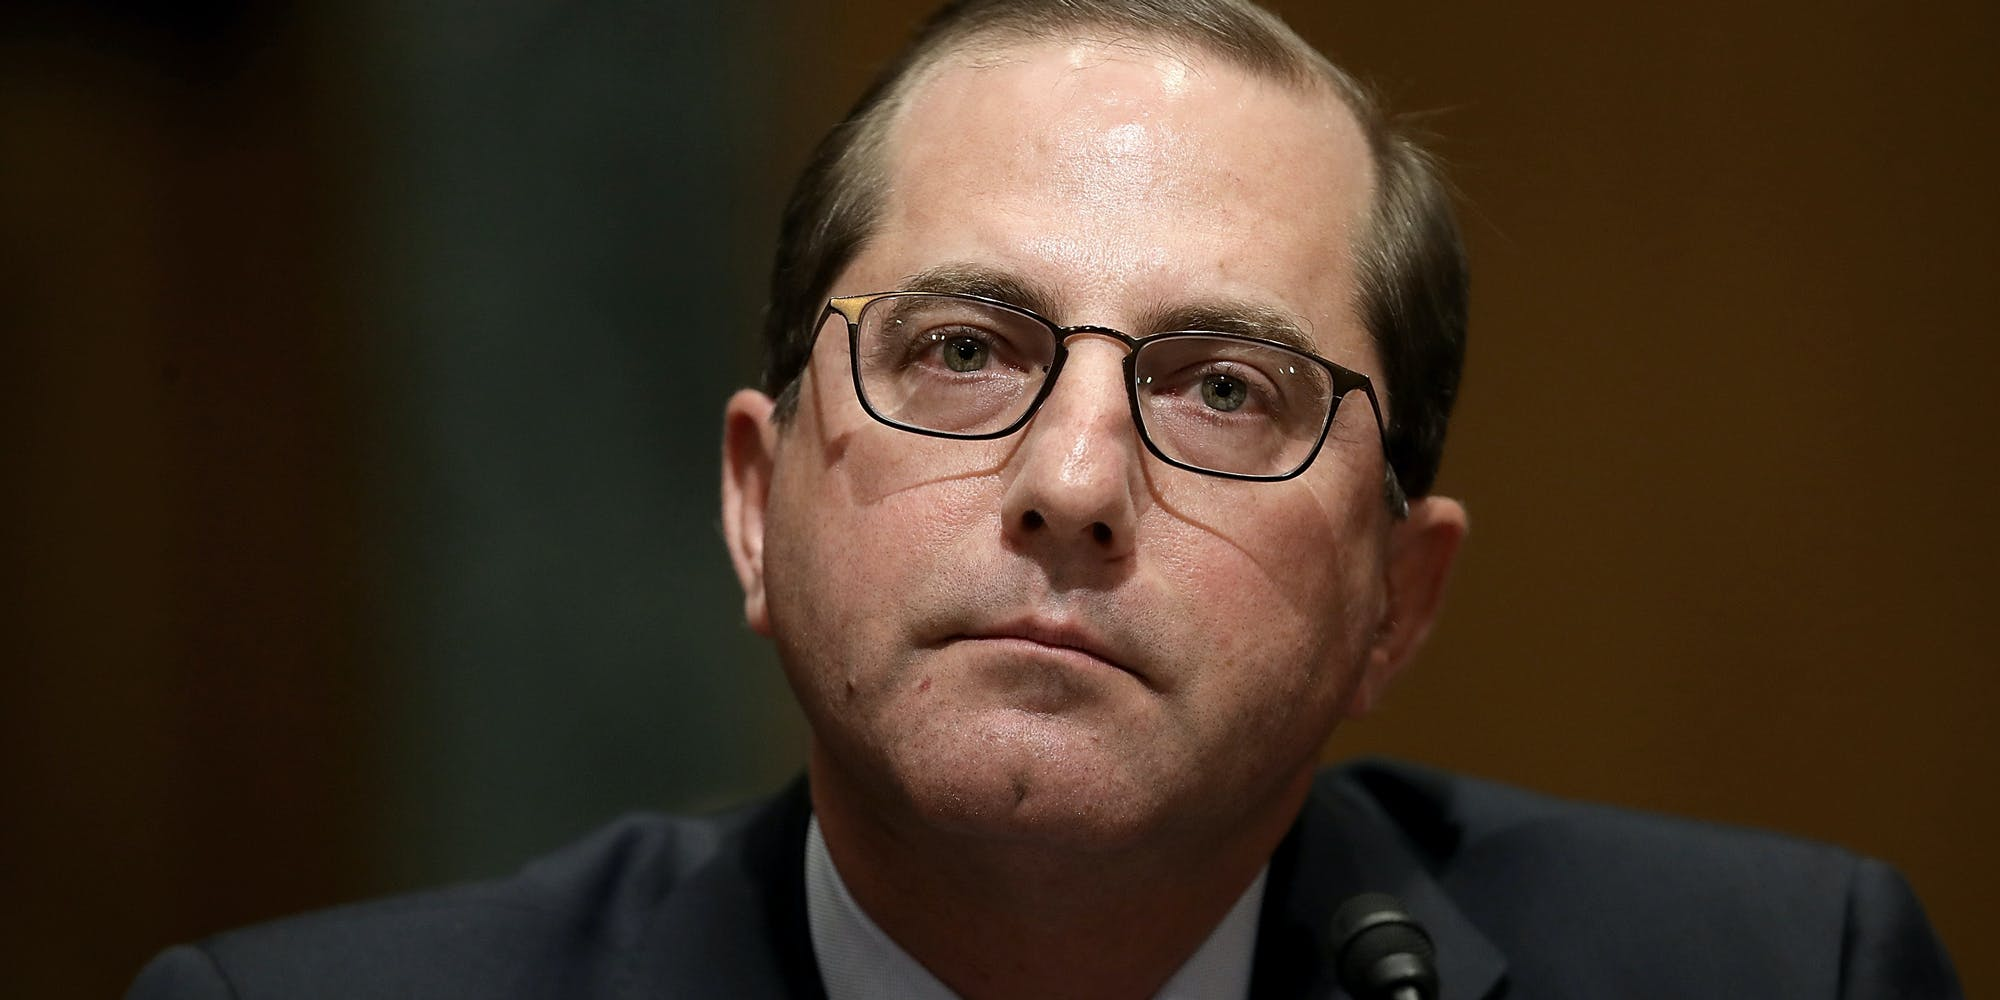 U.S. Health And Human Services Secretary Alex Azar Says Medical Marijuana Doesn't Exist